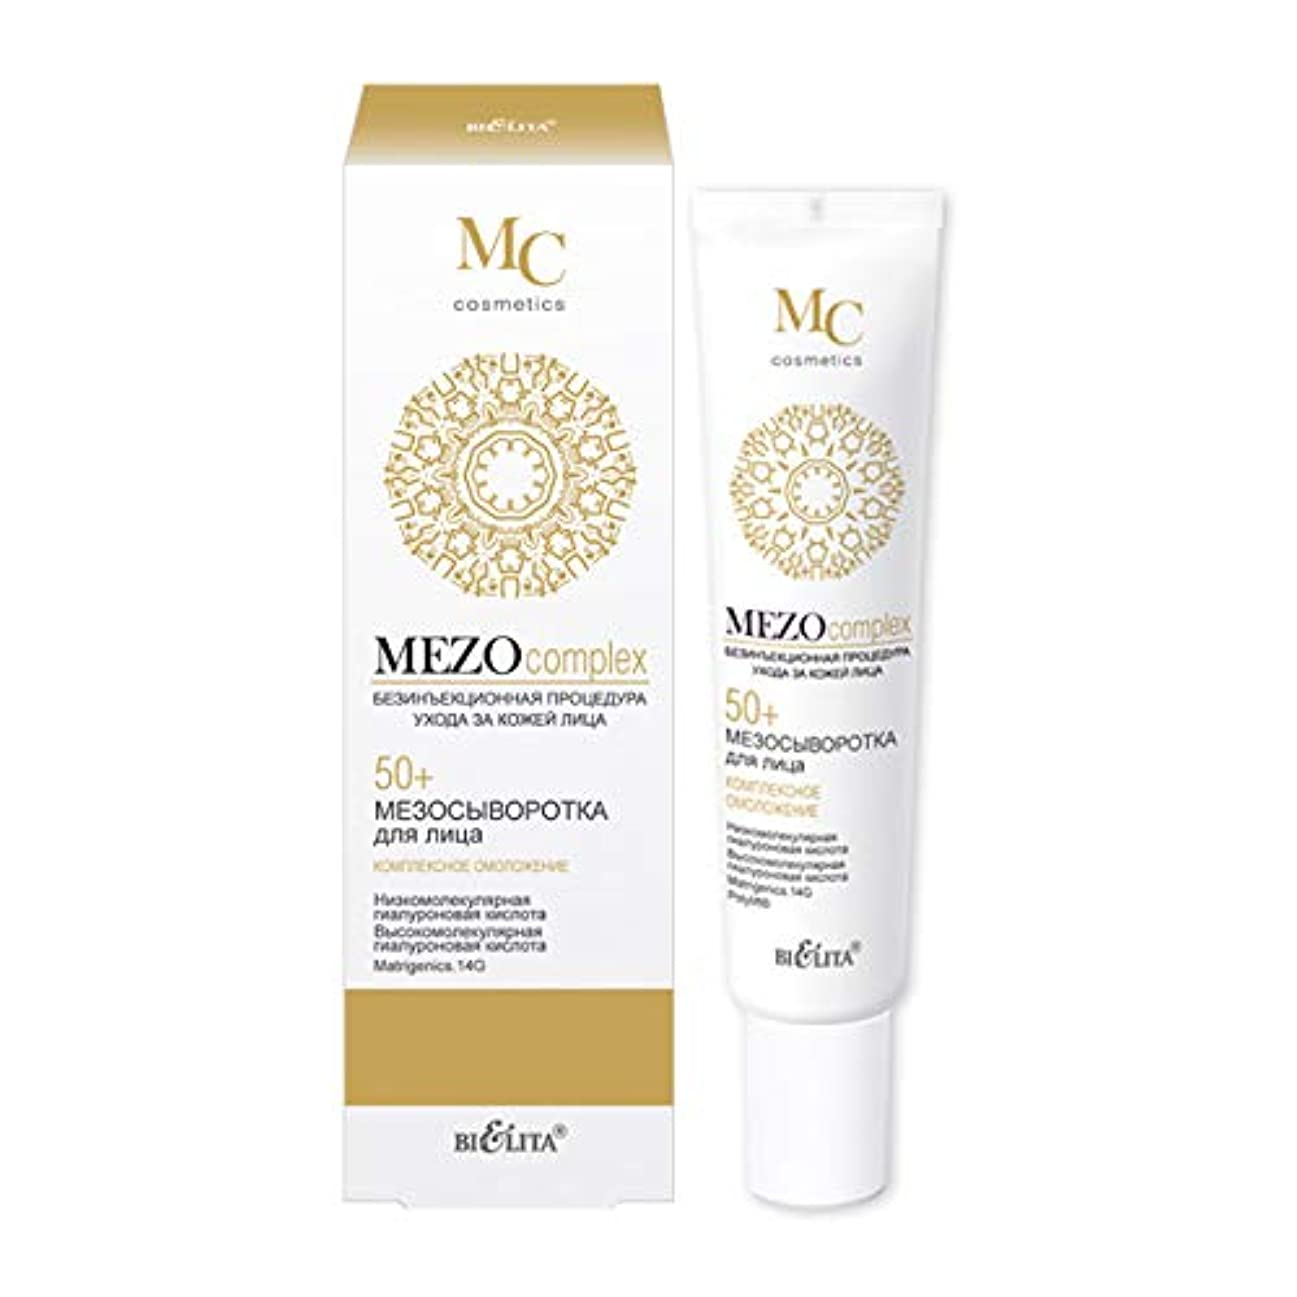 喜びいつかメーターMezo complex | Mezo Serum Complex 50+ | Non-injection facial skin care procedure | Hyaluronic acid | Matrigenics.14G | Polylift | Active formula | 20 ml